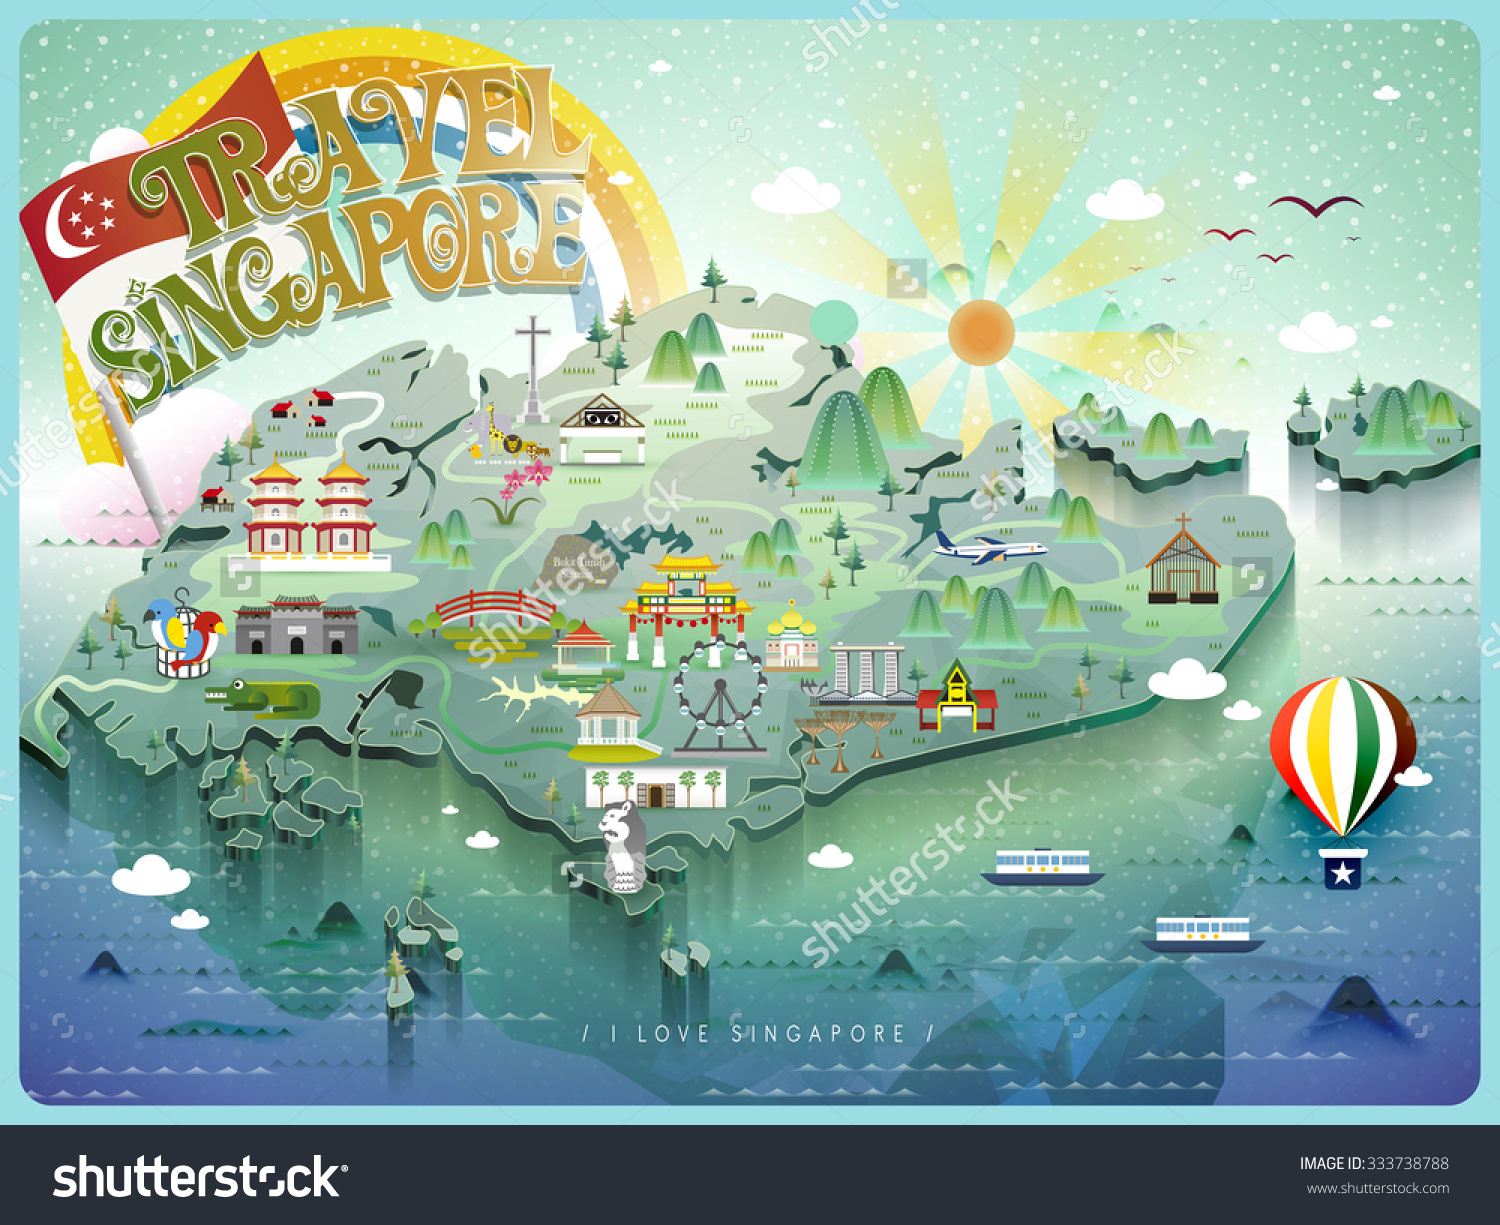 Attractive Singapore Travel Map Colorful Attractions – Singapore Tourist Attractions Map